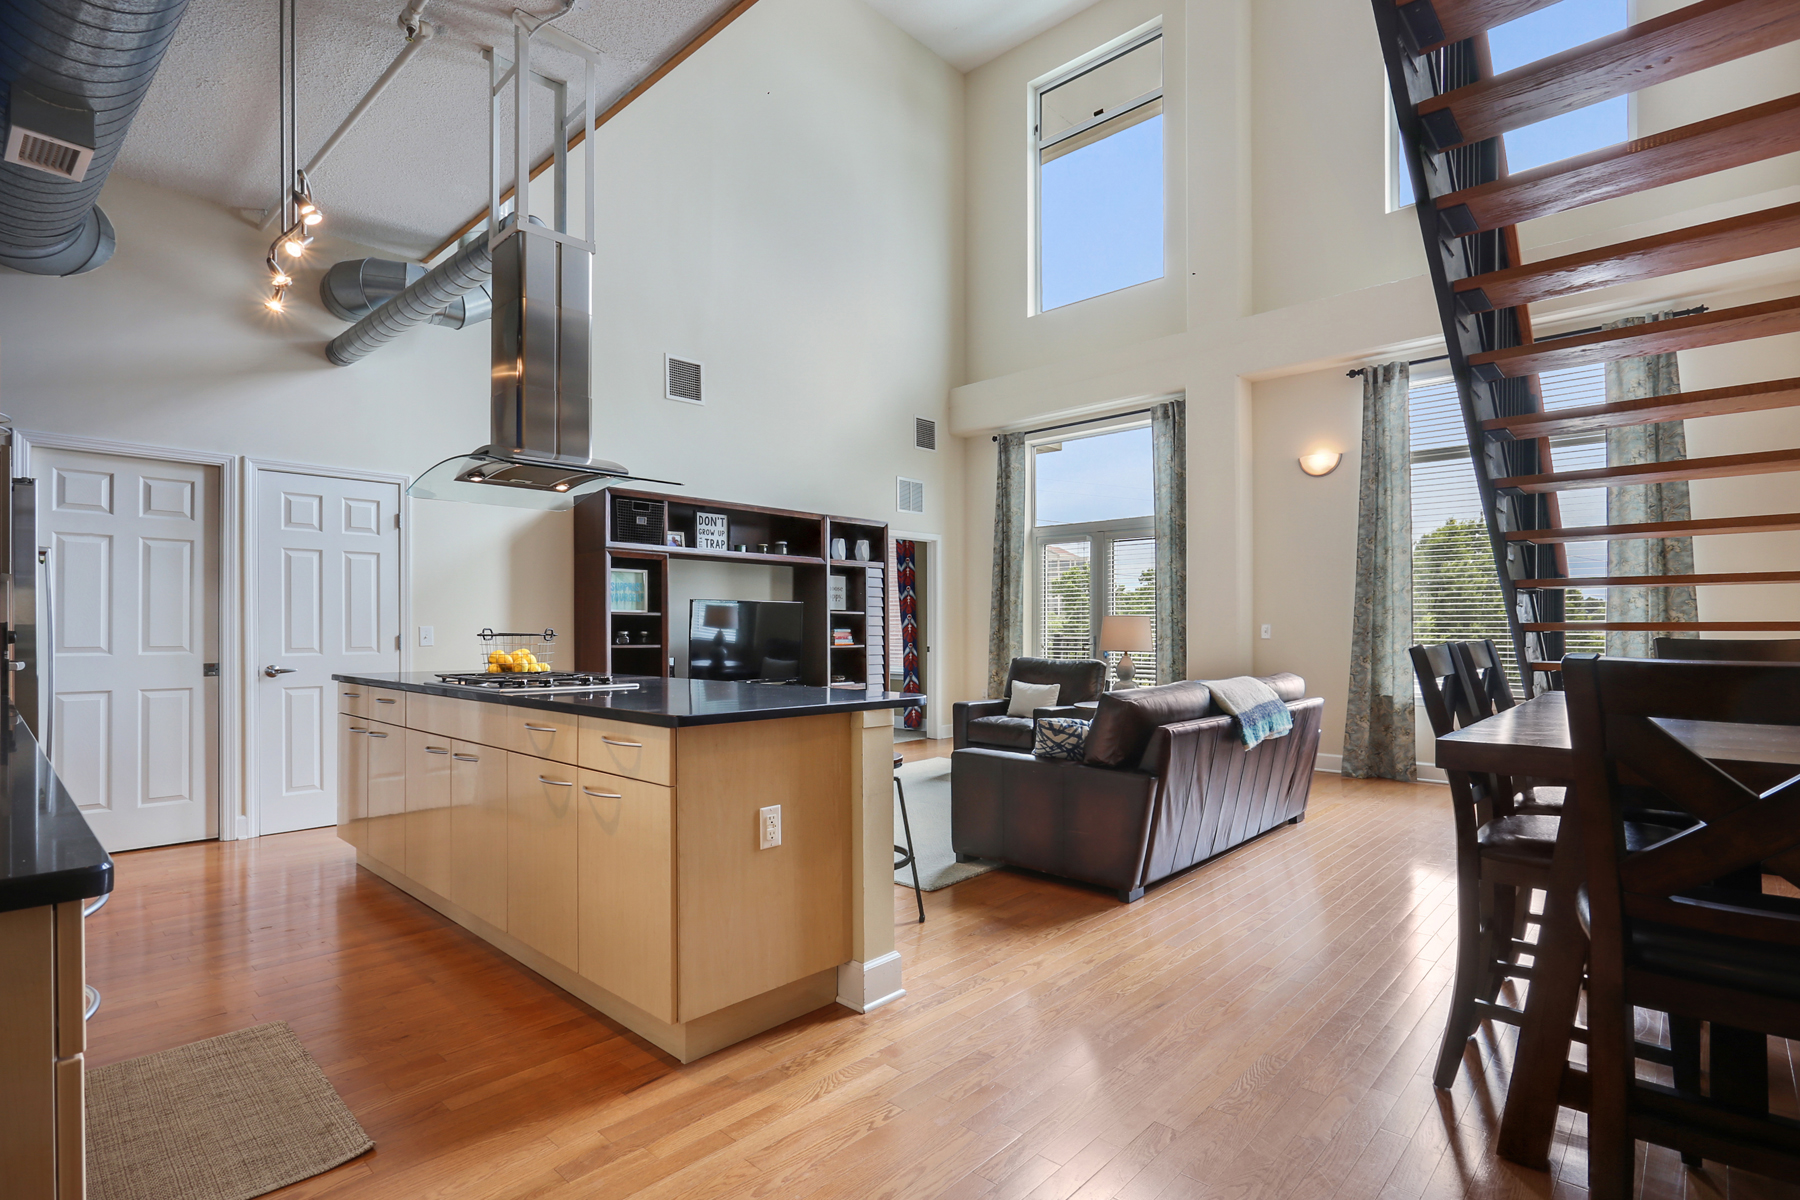 Property for Sale at Incredible Two-Story Loft Style Living 3820 Roswell Rd 503 Atlanta, Georgia 30342 United States